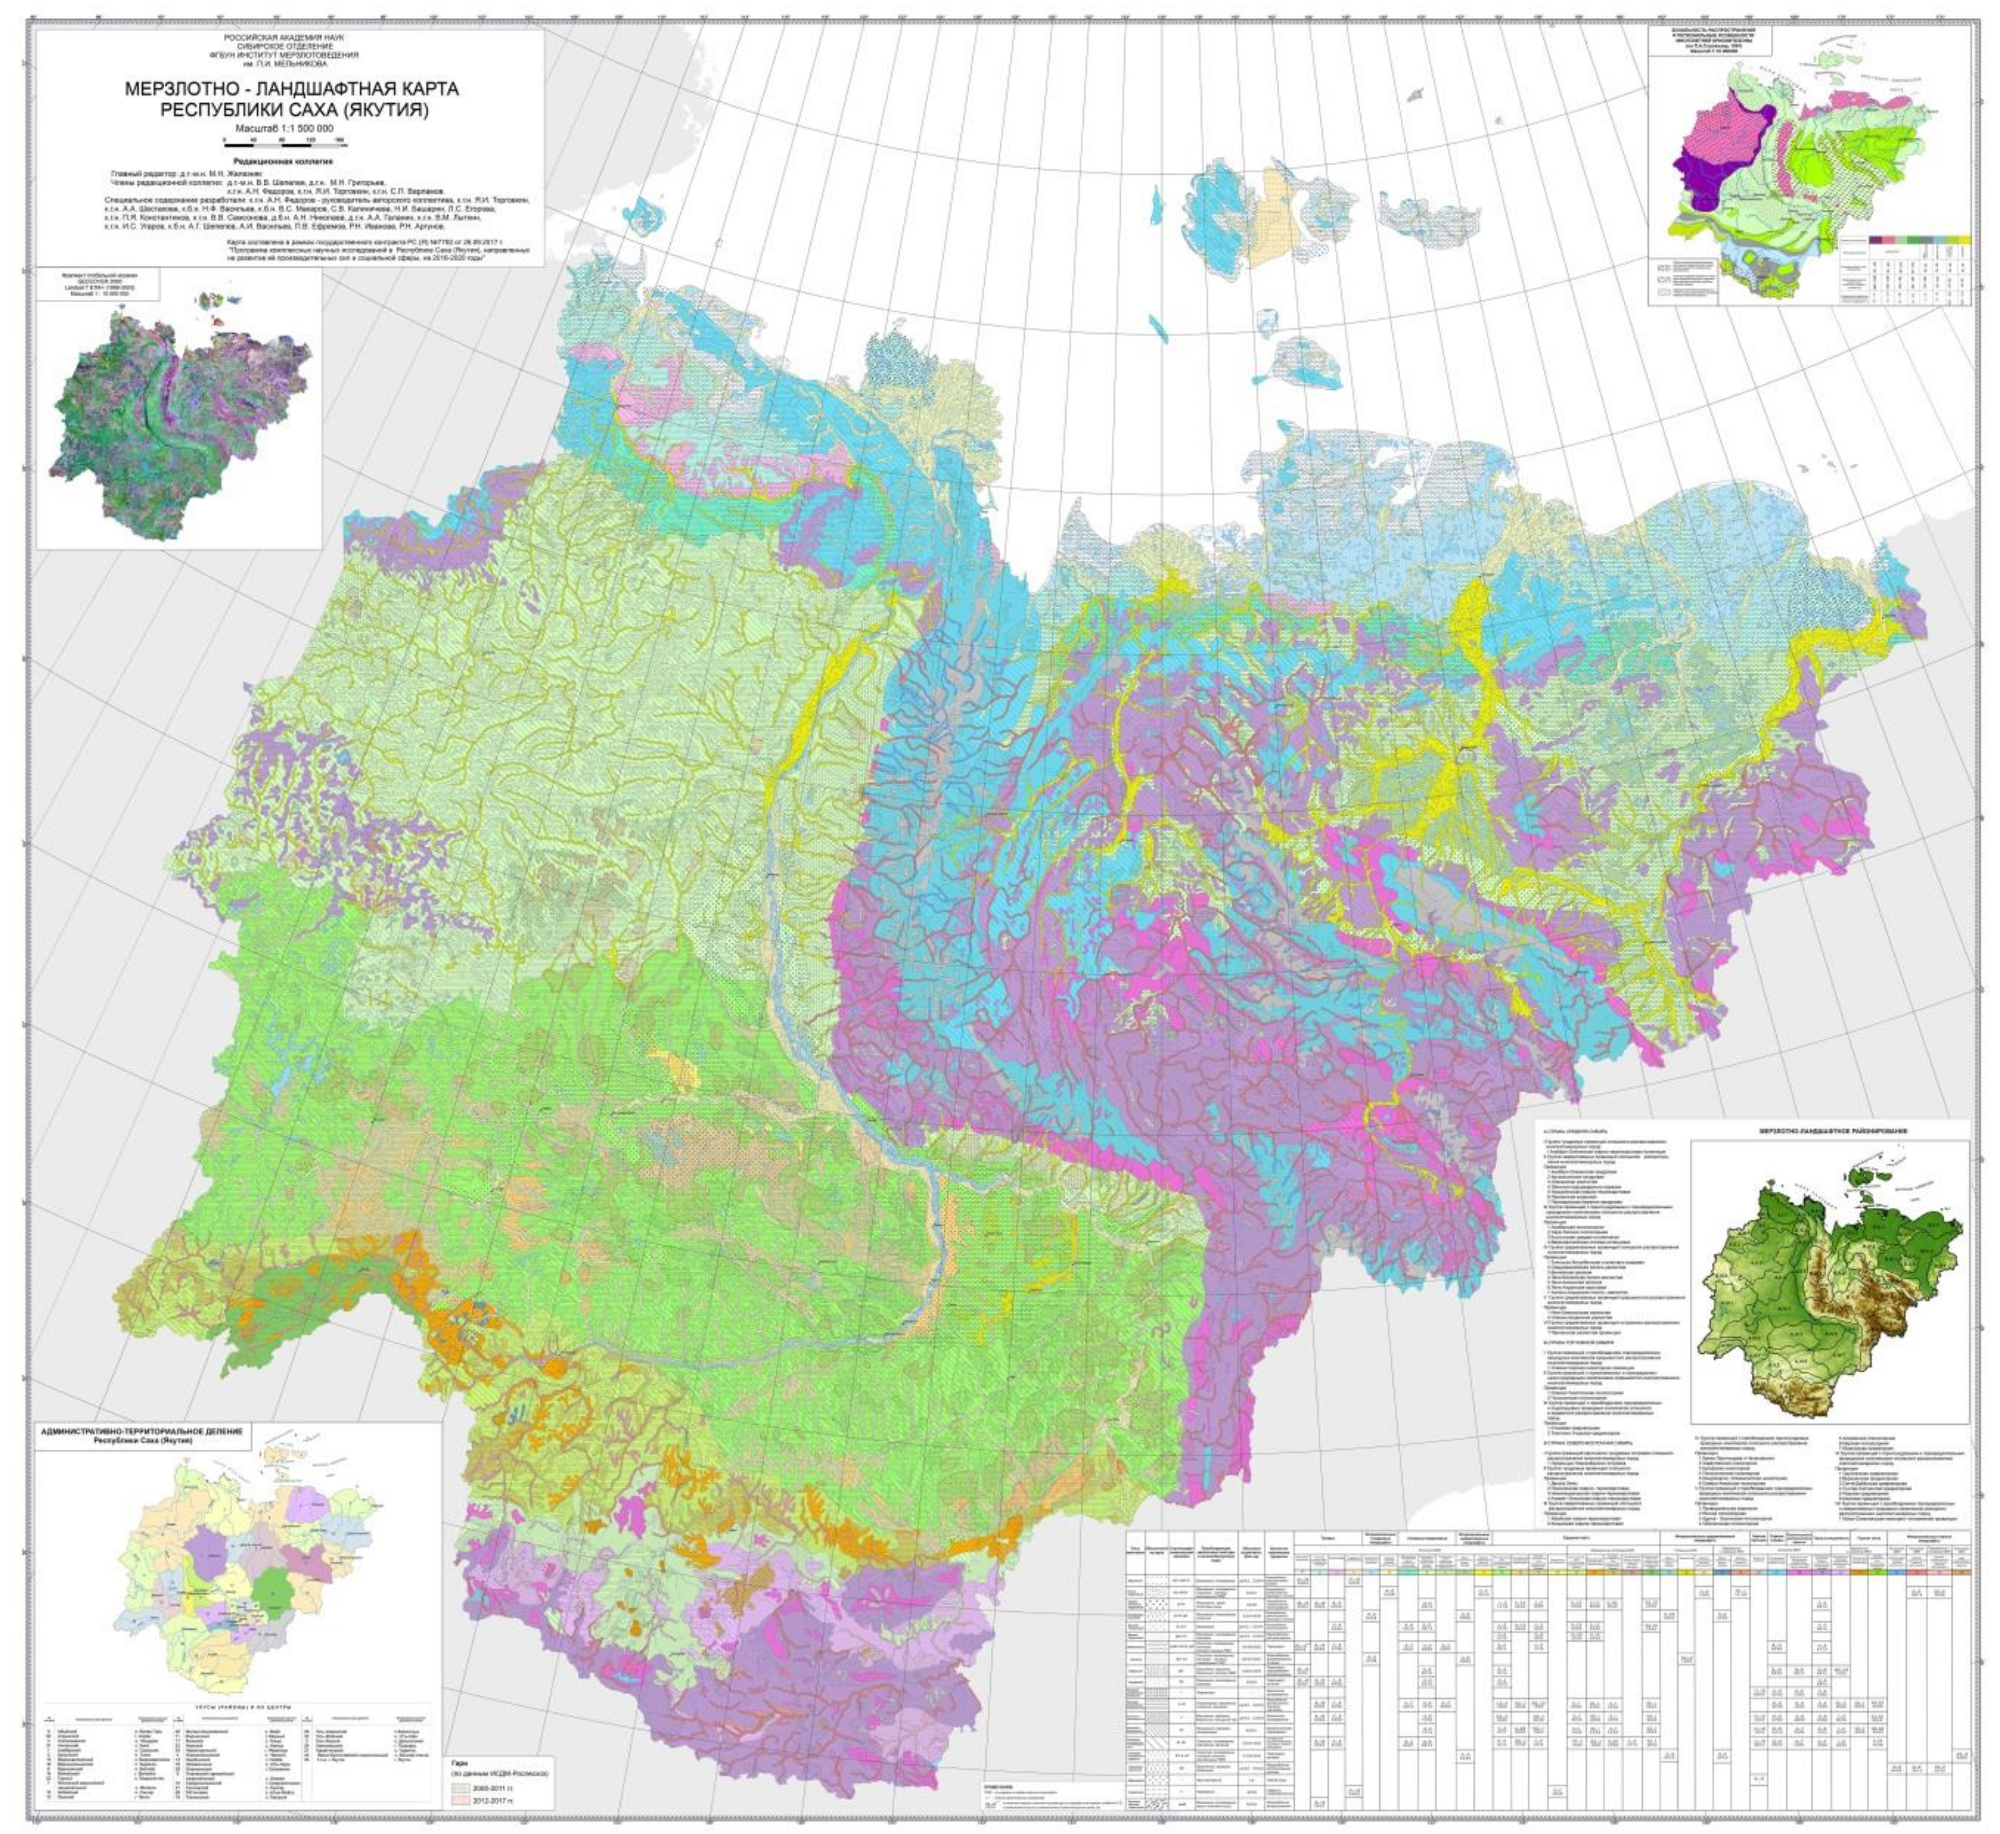 Geosciences   Free Full-Text   Permafrost-Landscape Map of the ... on vilnius russia map, vladivostok russia map, khabarovsk russia map, yakutia russia map, elista russia map, simferopol russia map, altai krai russia map, hawaii russia map, tynda russia map, volsk russia map, yurga russia map, volga river map, irkutsk russia map, sakha russia map, chita russia map, markovo russia map, tallinn russia map, petropavlovsk-kamchatsky russia map, siberia russia map, yerevan russia map,